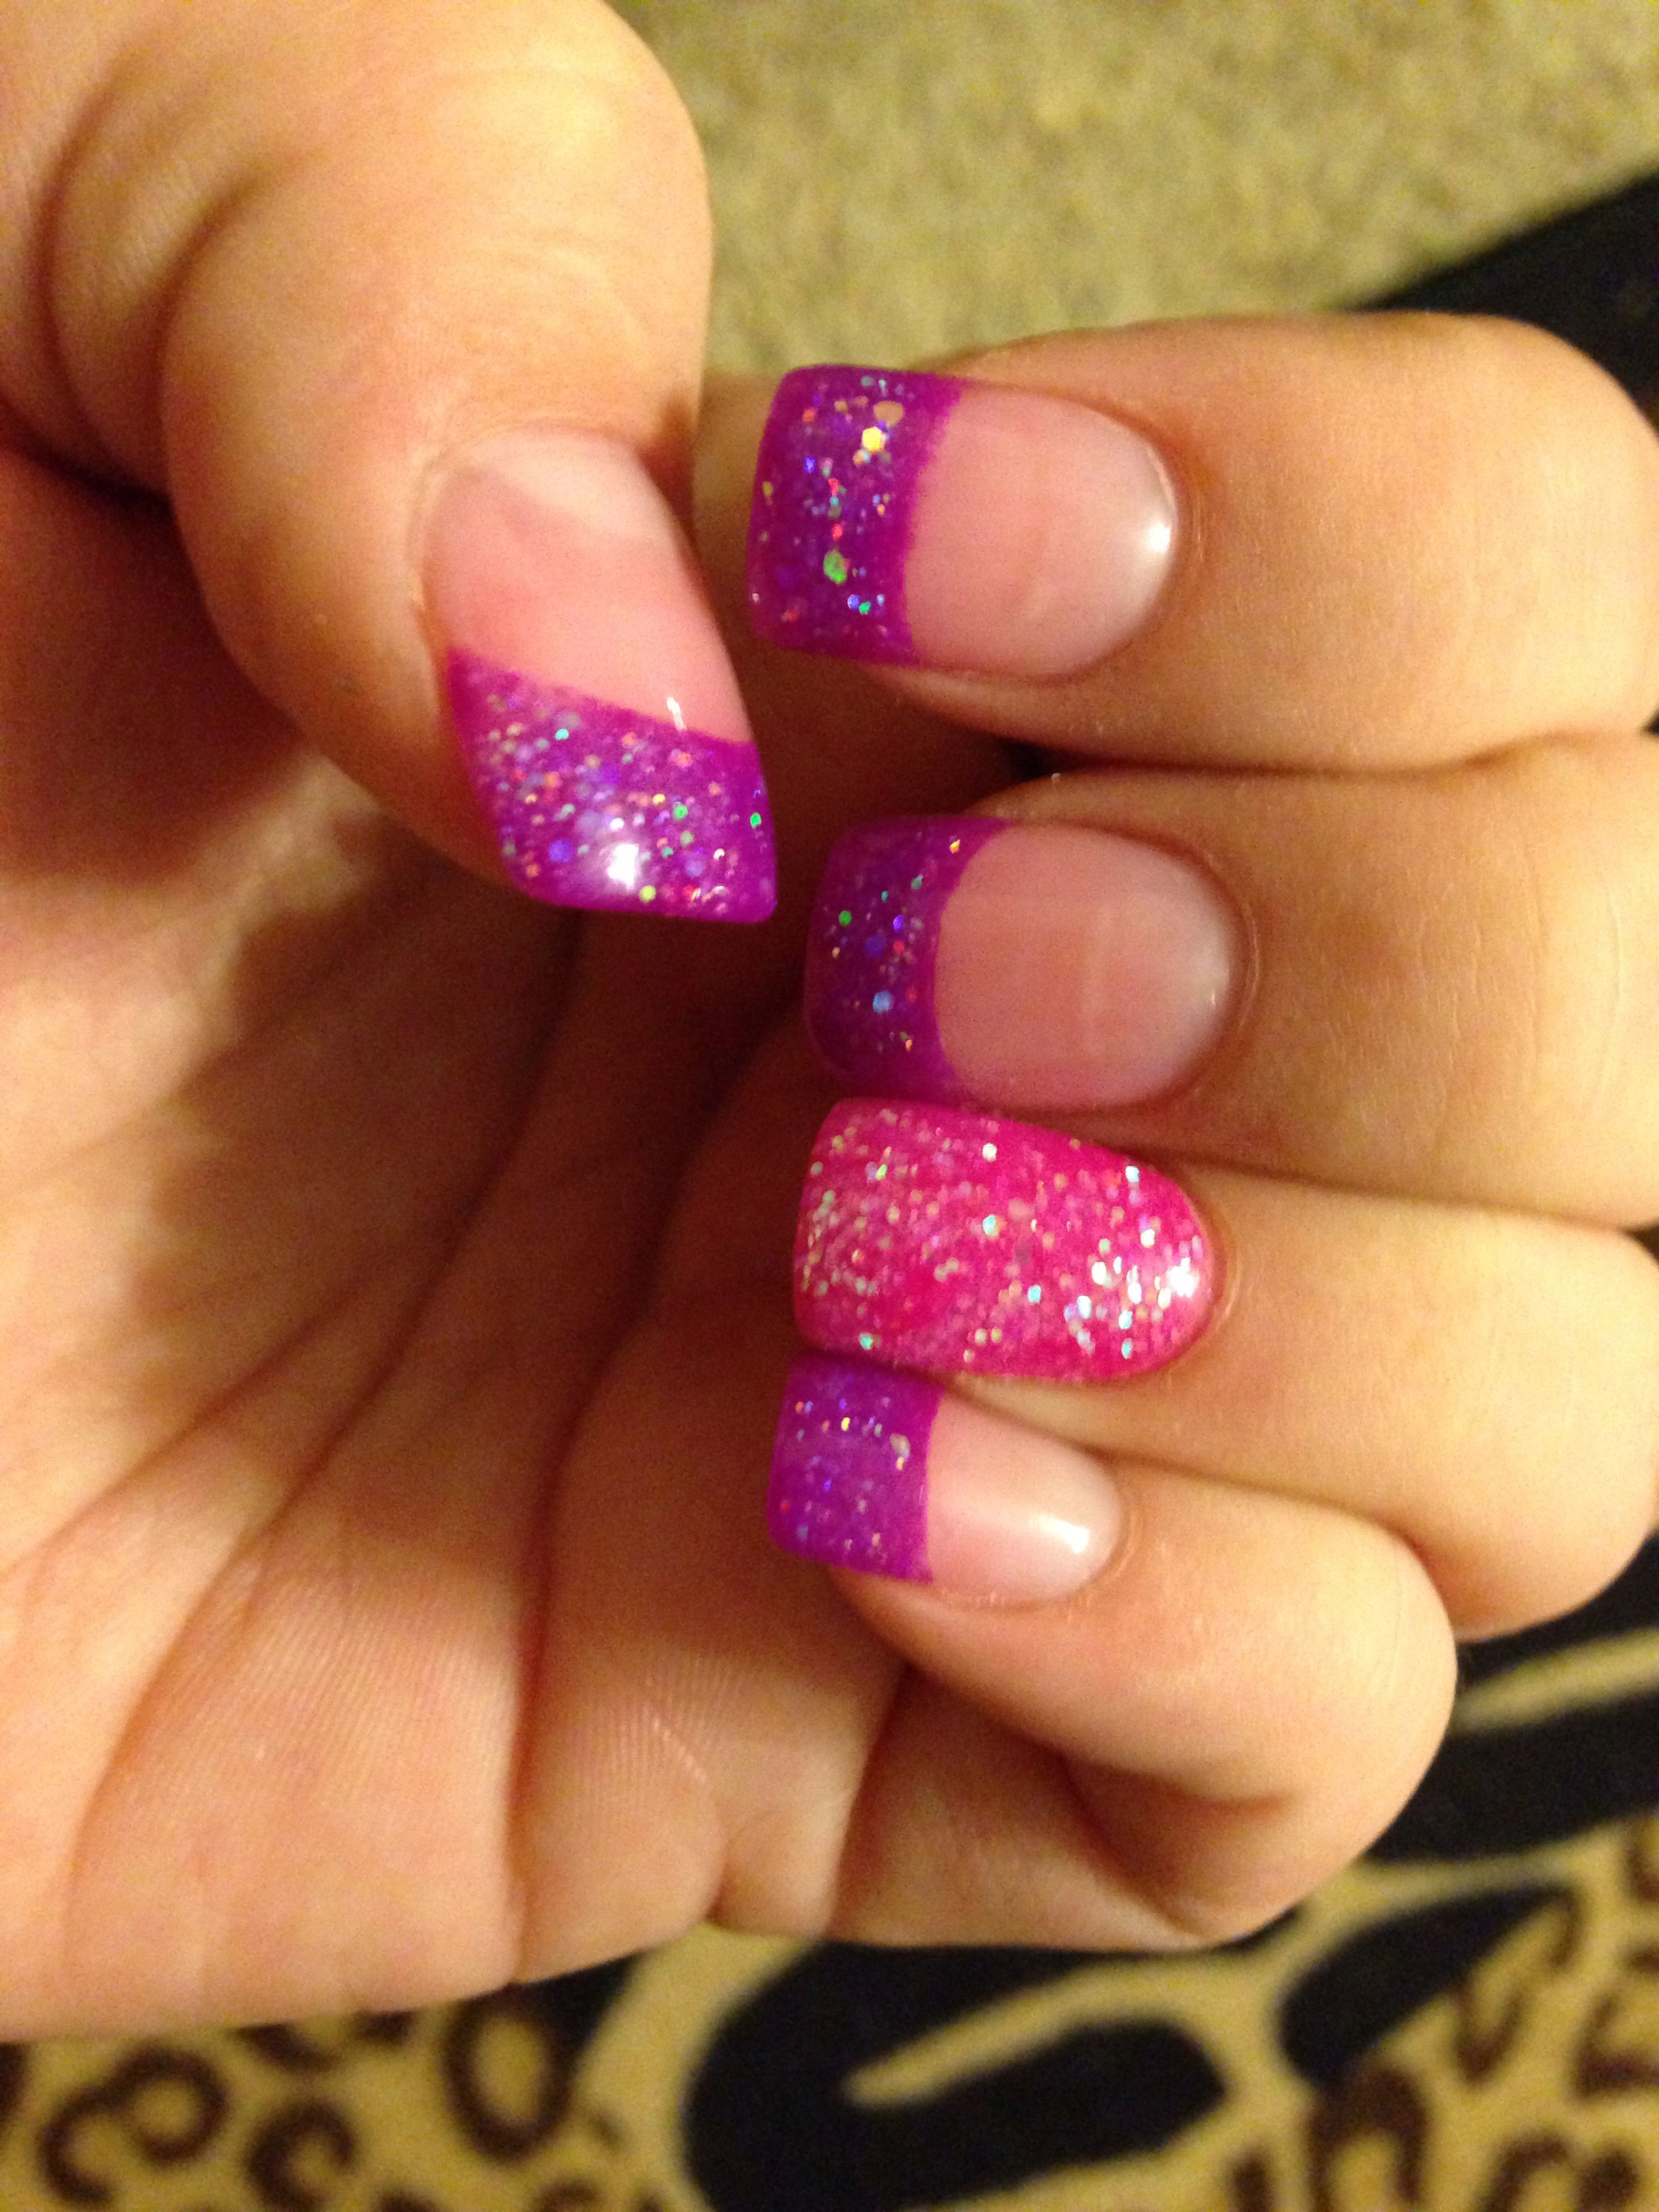 My current nails neon purple and hot pink glitter French solar tips ...